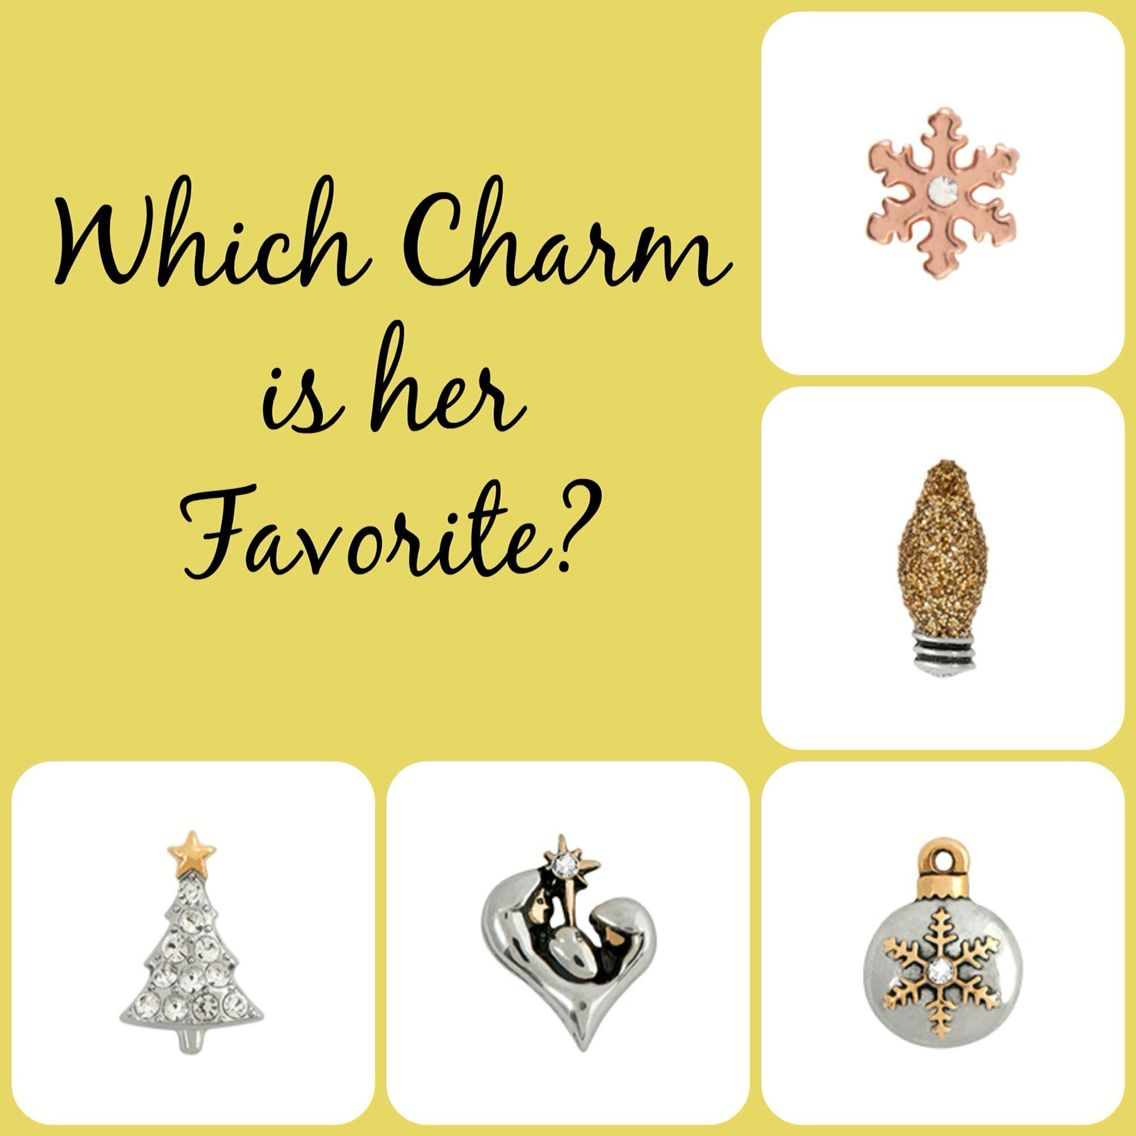 What would be your favorite charm httpsdreambigorigamiowl what would be your favorite charm httpsdreambigorigamiowl jeuxipadfo Gallery